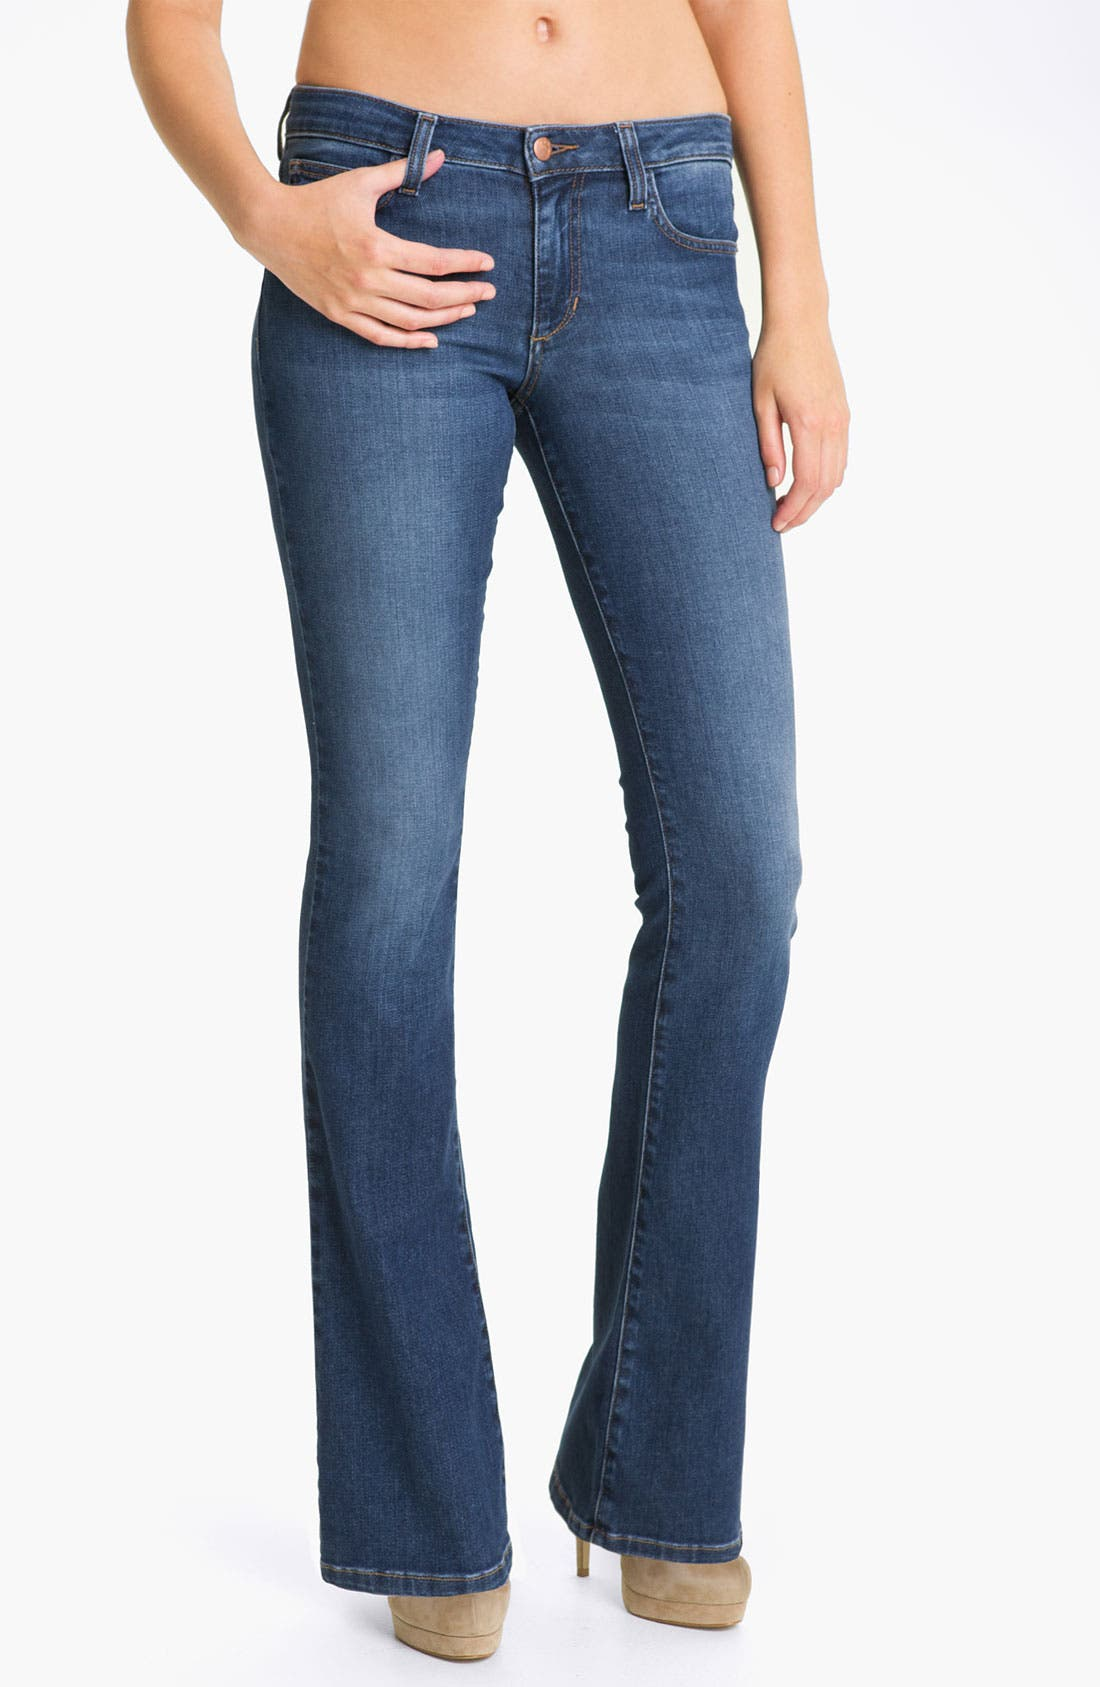 Alternate Image 1 Selected - Joe's 'Honey' Curvy Fit Bootcut Jeans (Angialee)